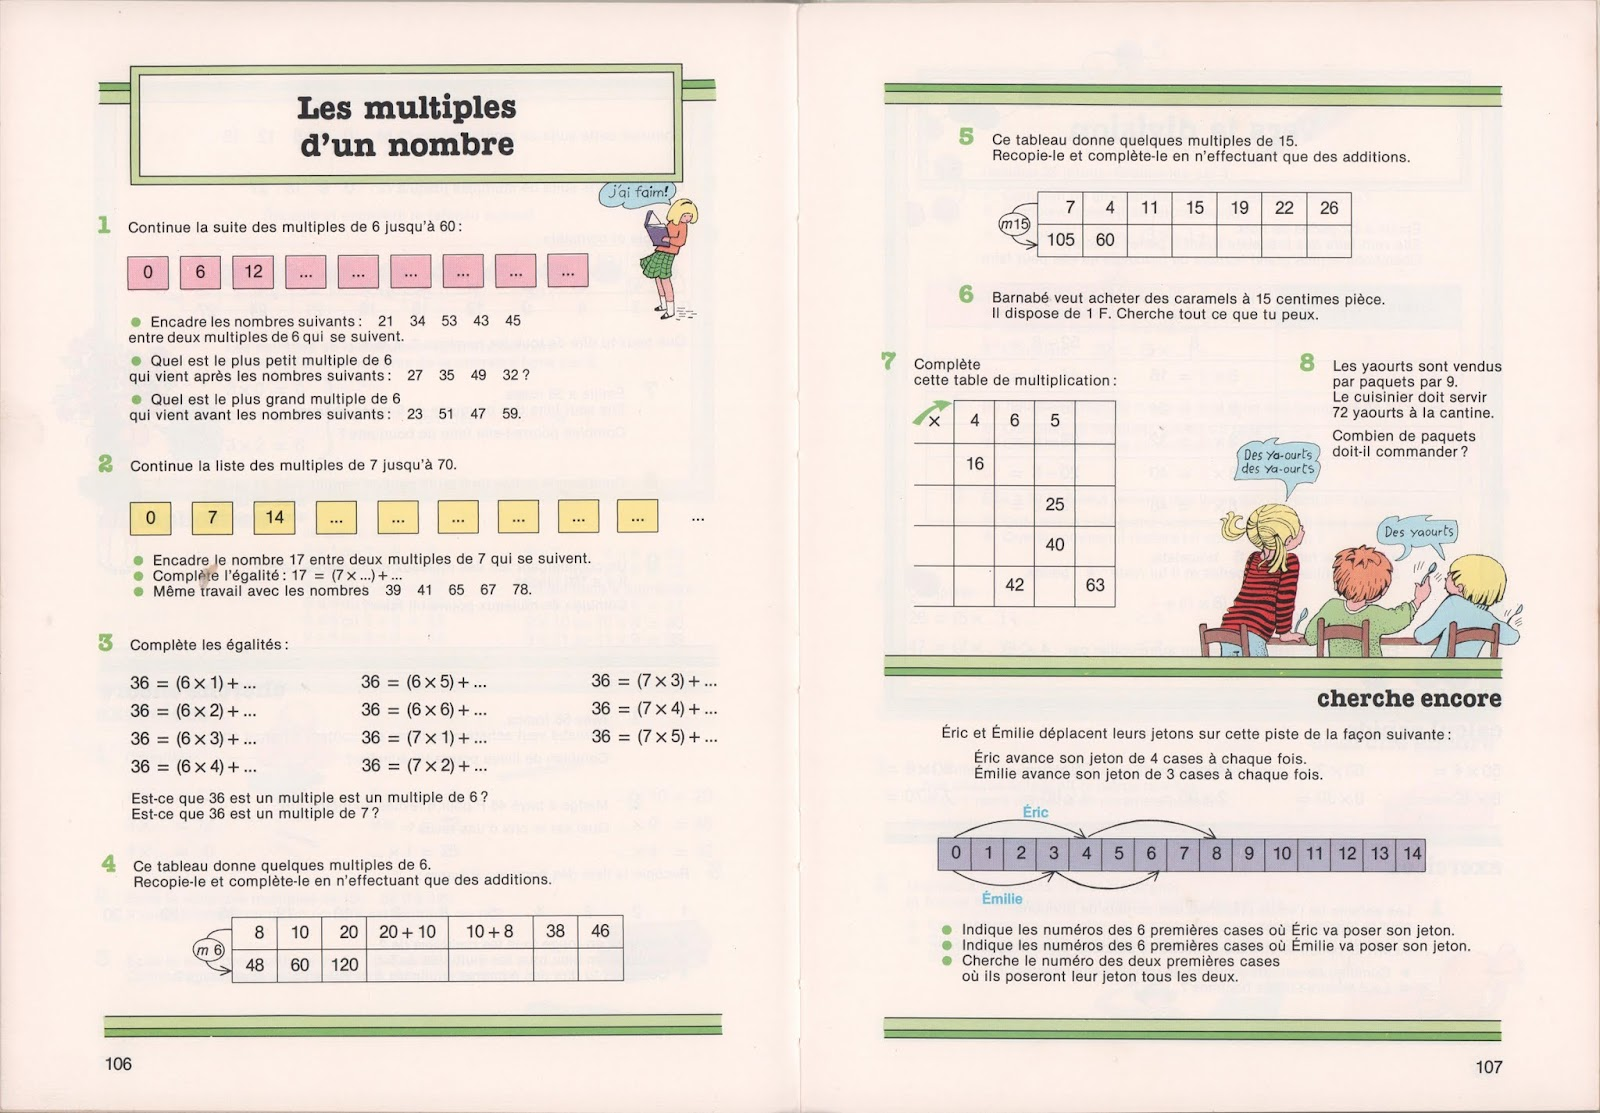 Les tables de multiplication Le Matou matheux